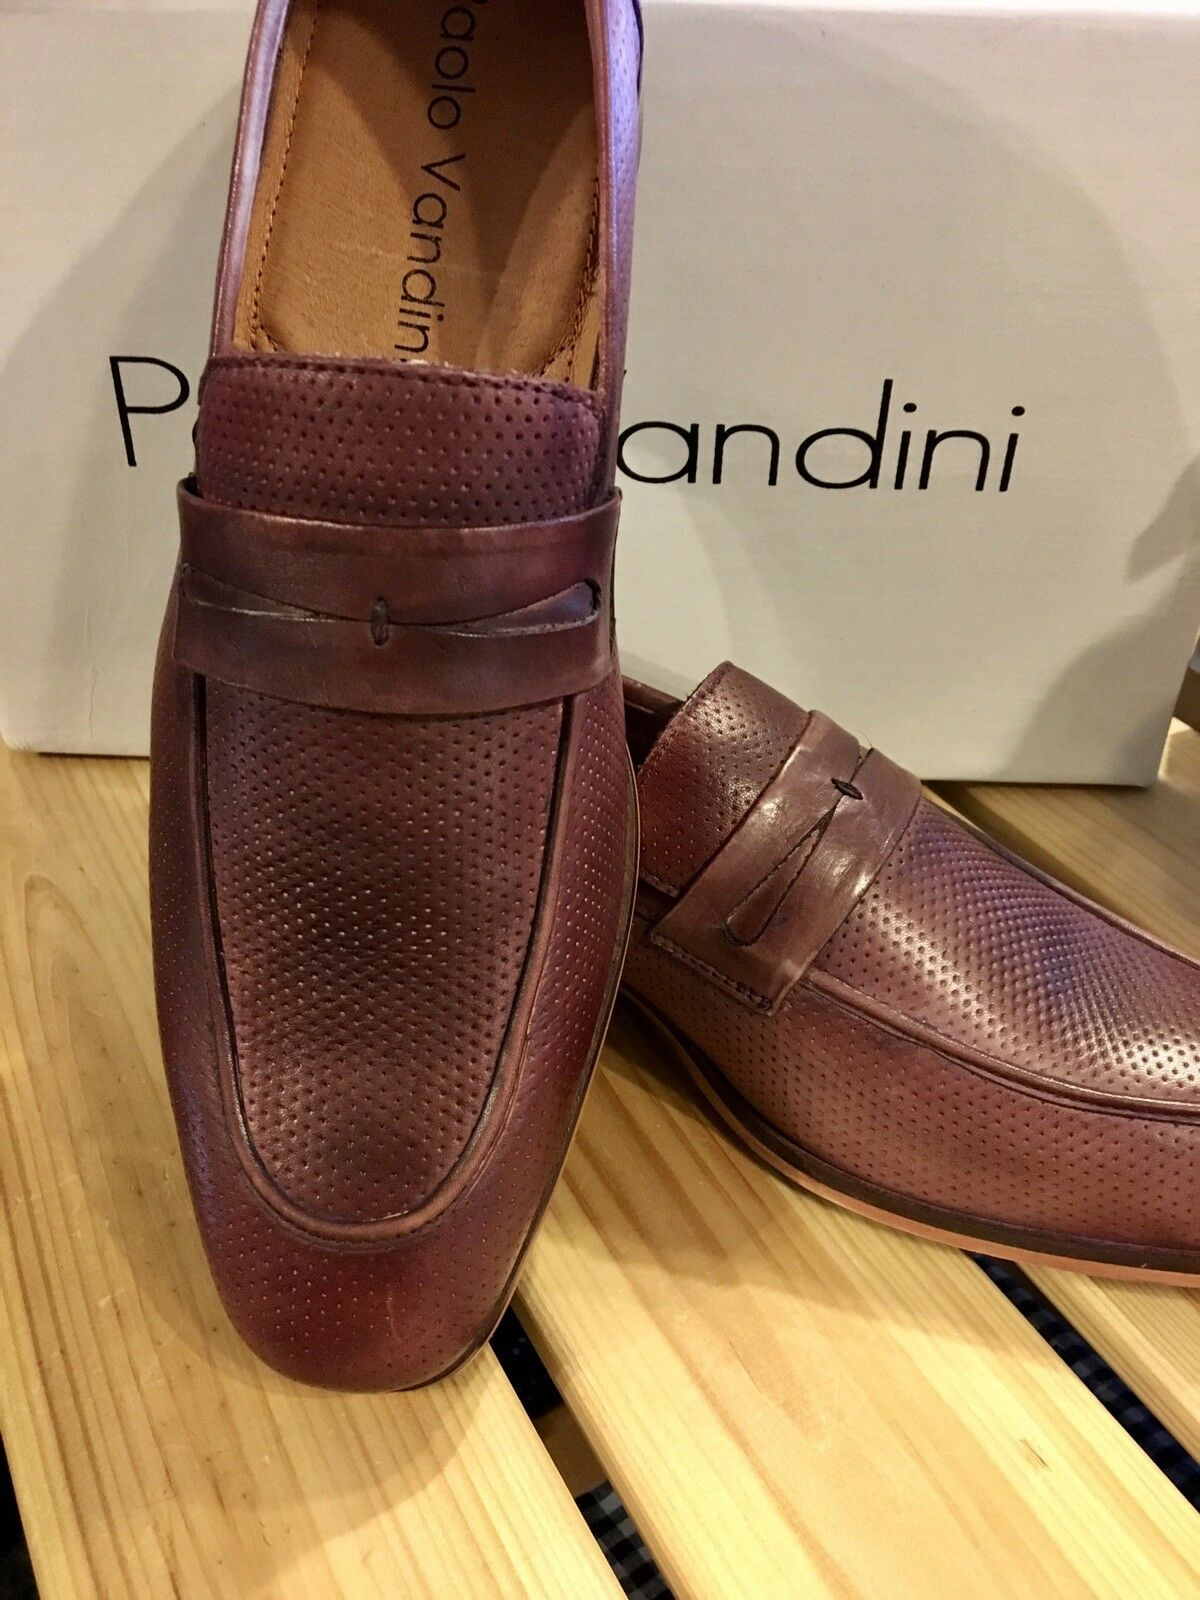 Paolo Paolo Paolo Vandini. Italian 'Hand Made' Slip On shoes. Burgundy. 9 43. Best Quality. 19911b